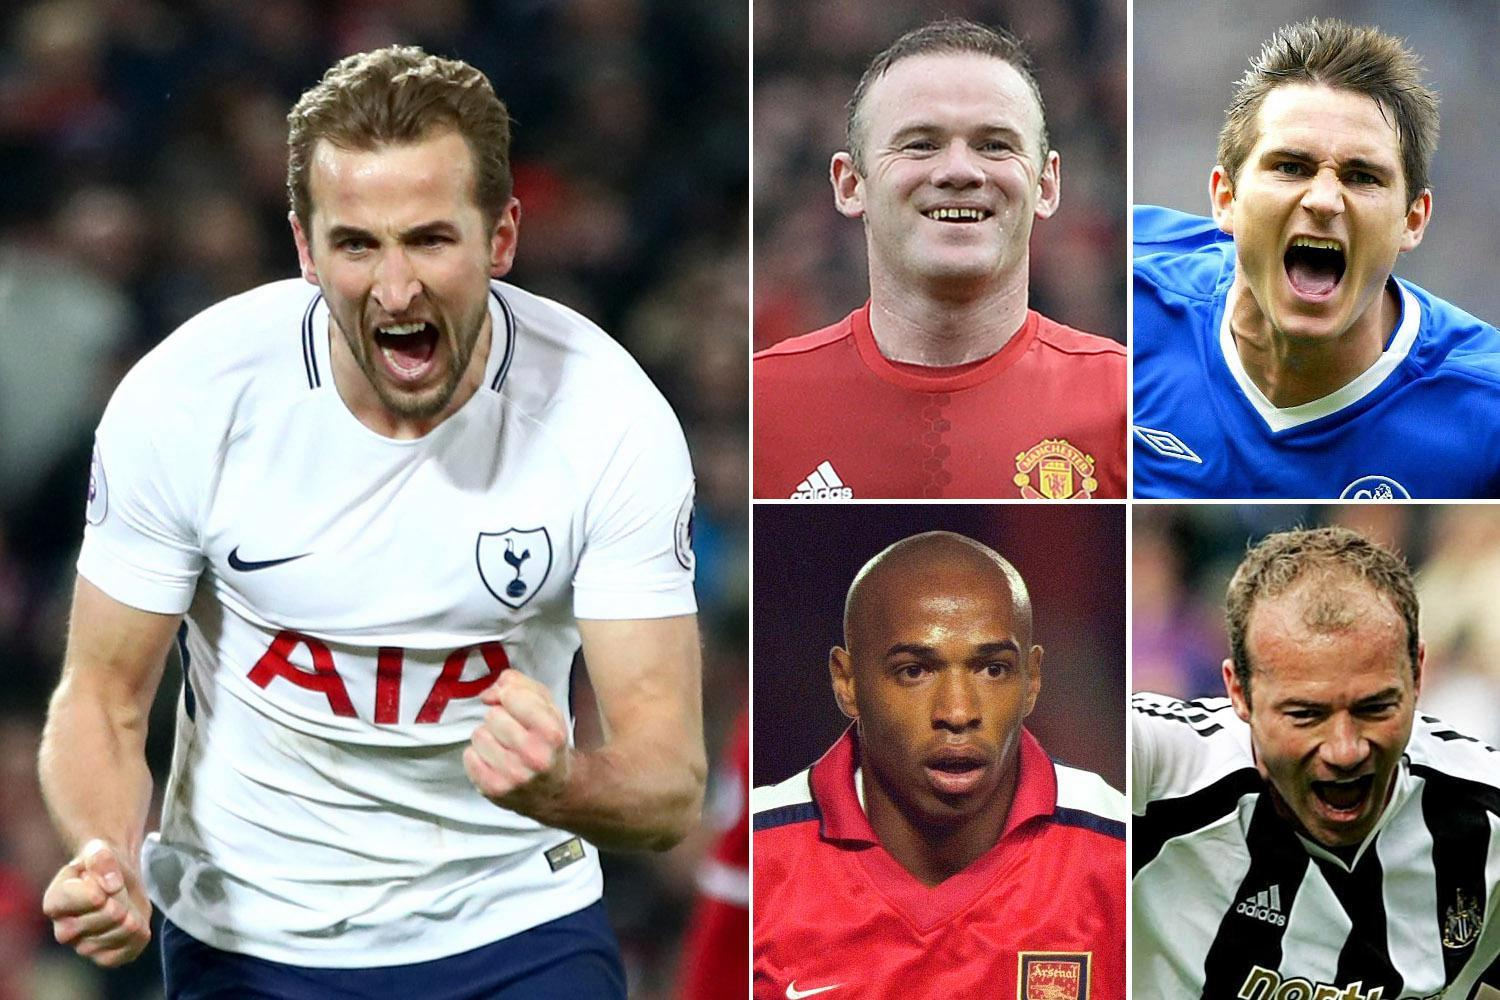 Harry Kane joins an exclusive list of legends to score 100 Premier League goals for one club, as he salvaged draw for Tottenham against Liverpool on Sunday